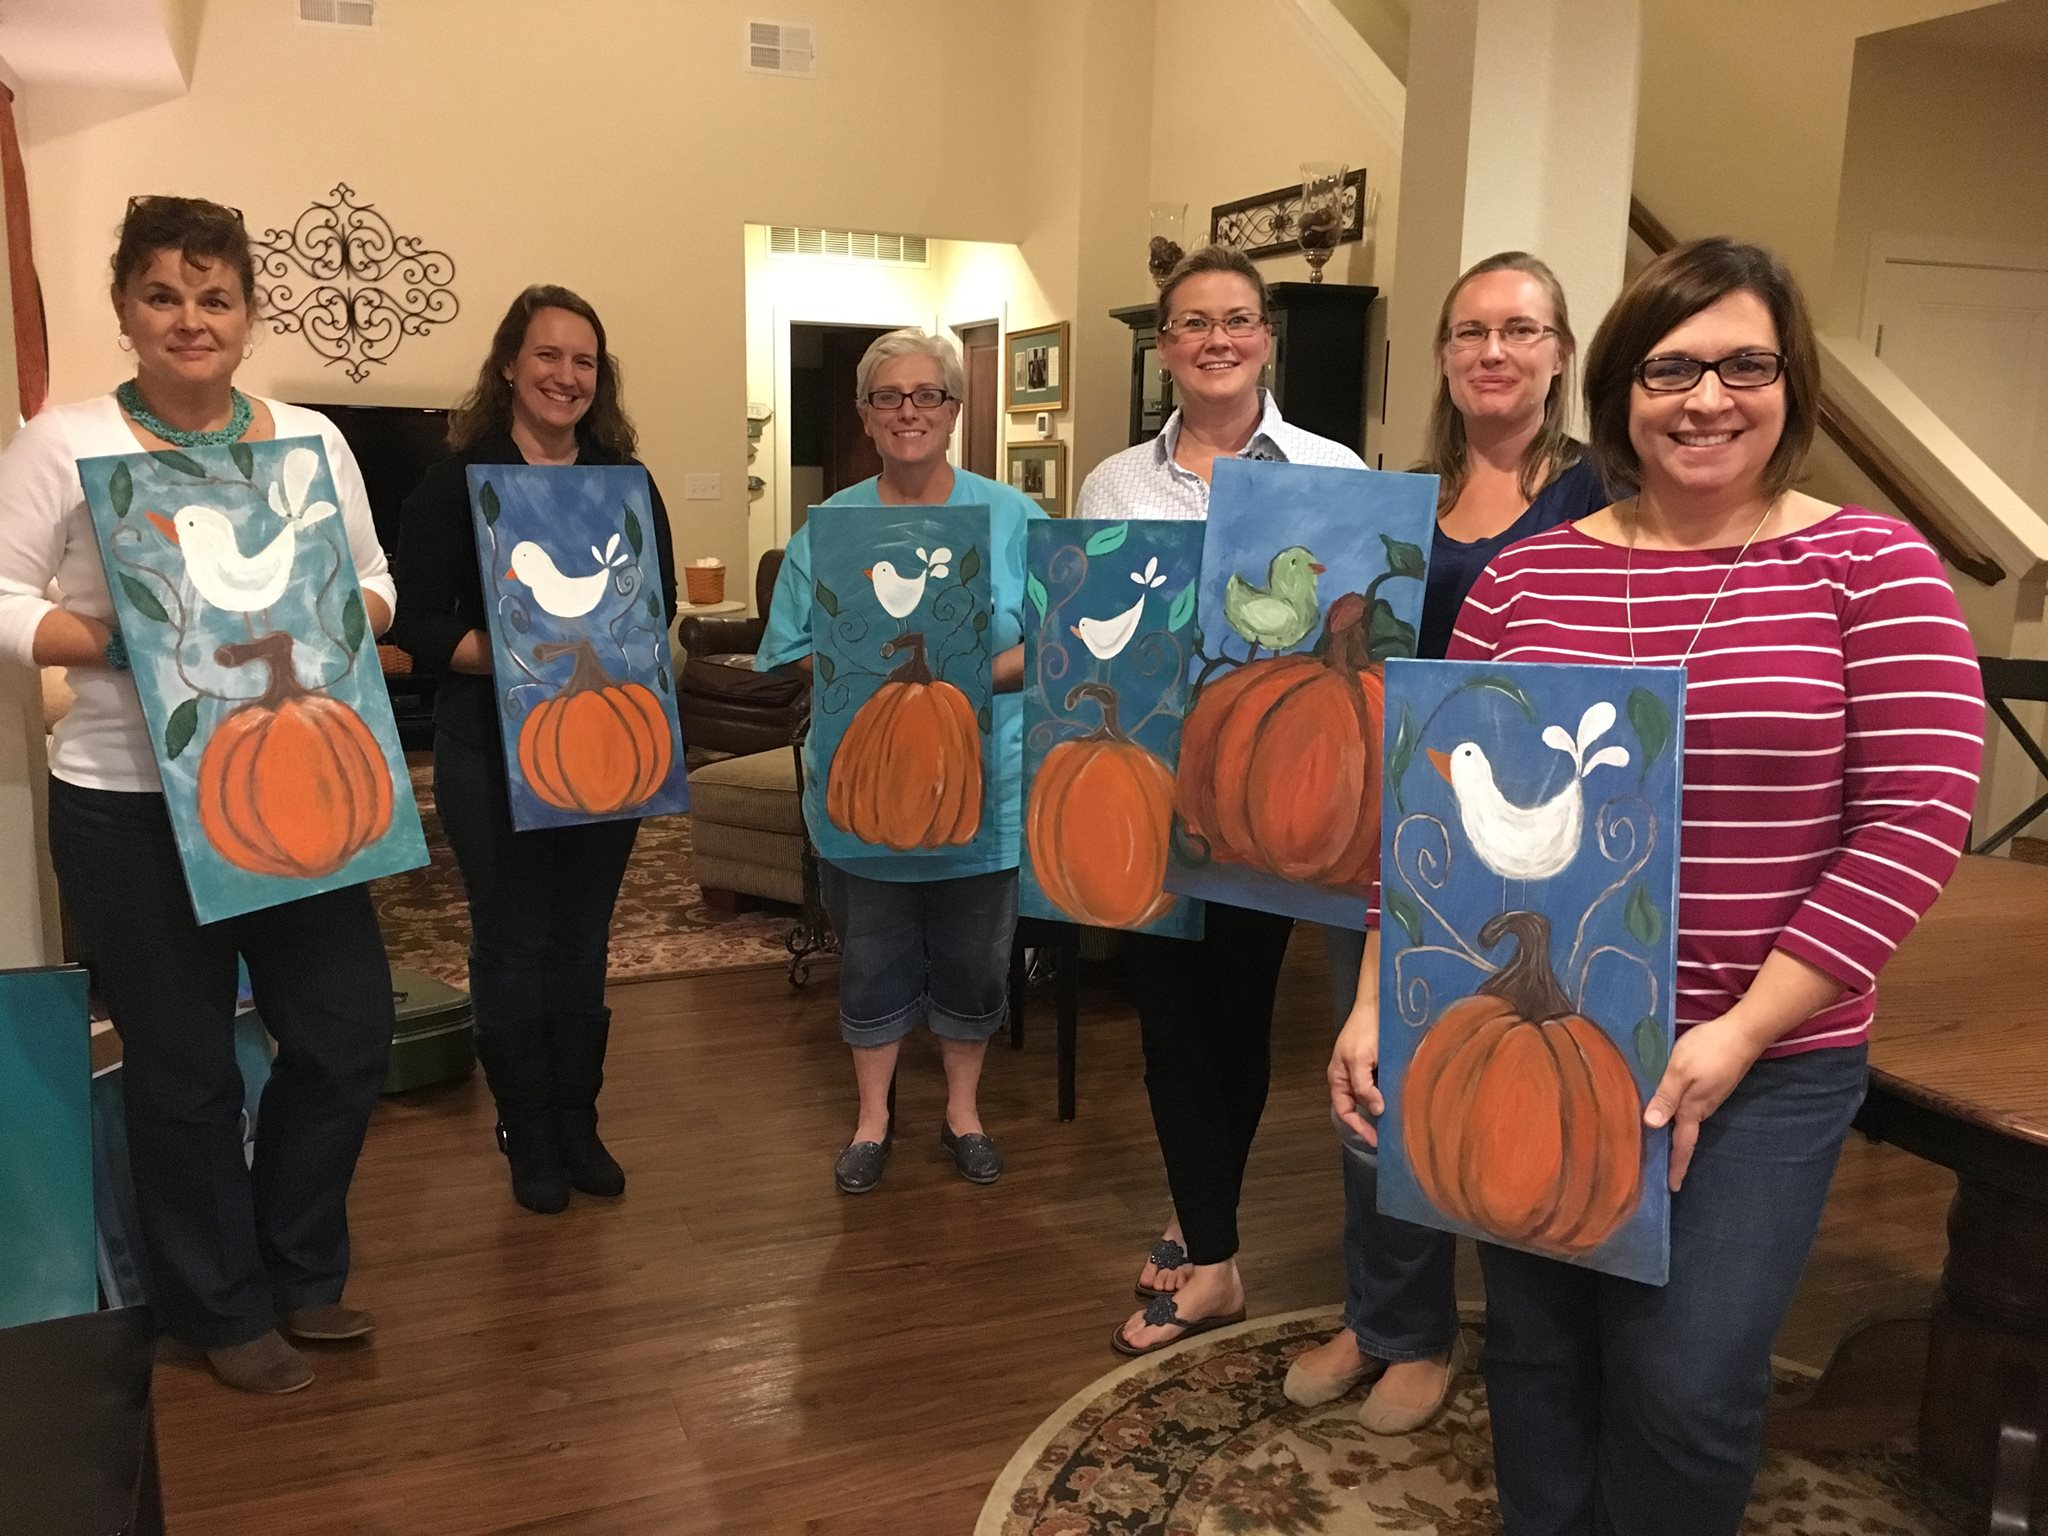 "These lovely military wives did not think they could ""paint or create"". HOWEVER, they all accomplished a Masterpiece. We had so much fun, we laughed about ""nice bottoms"" (on our pumpkins!) and relieved some stress, had a sip or two of wine and just enjoyed life!   Gigi P. hosted the event and she scheduled her second gathering and had a blast again the following month! Thank you ladies for a great time!"